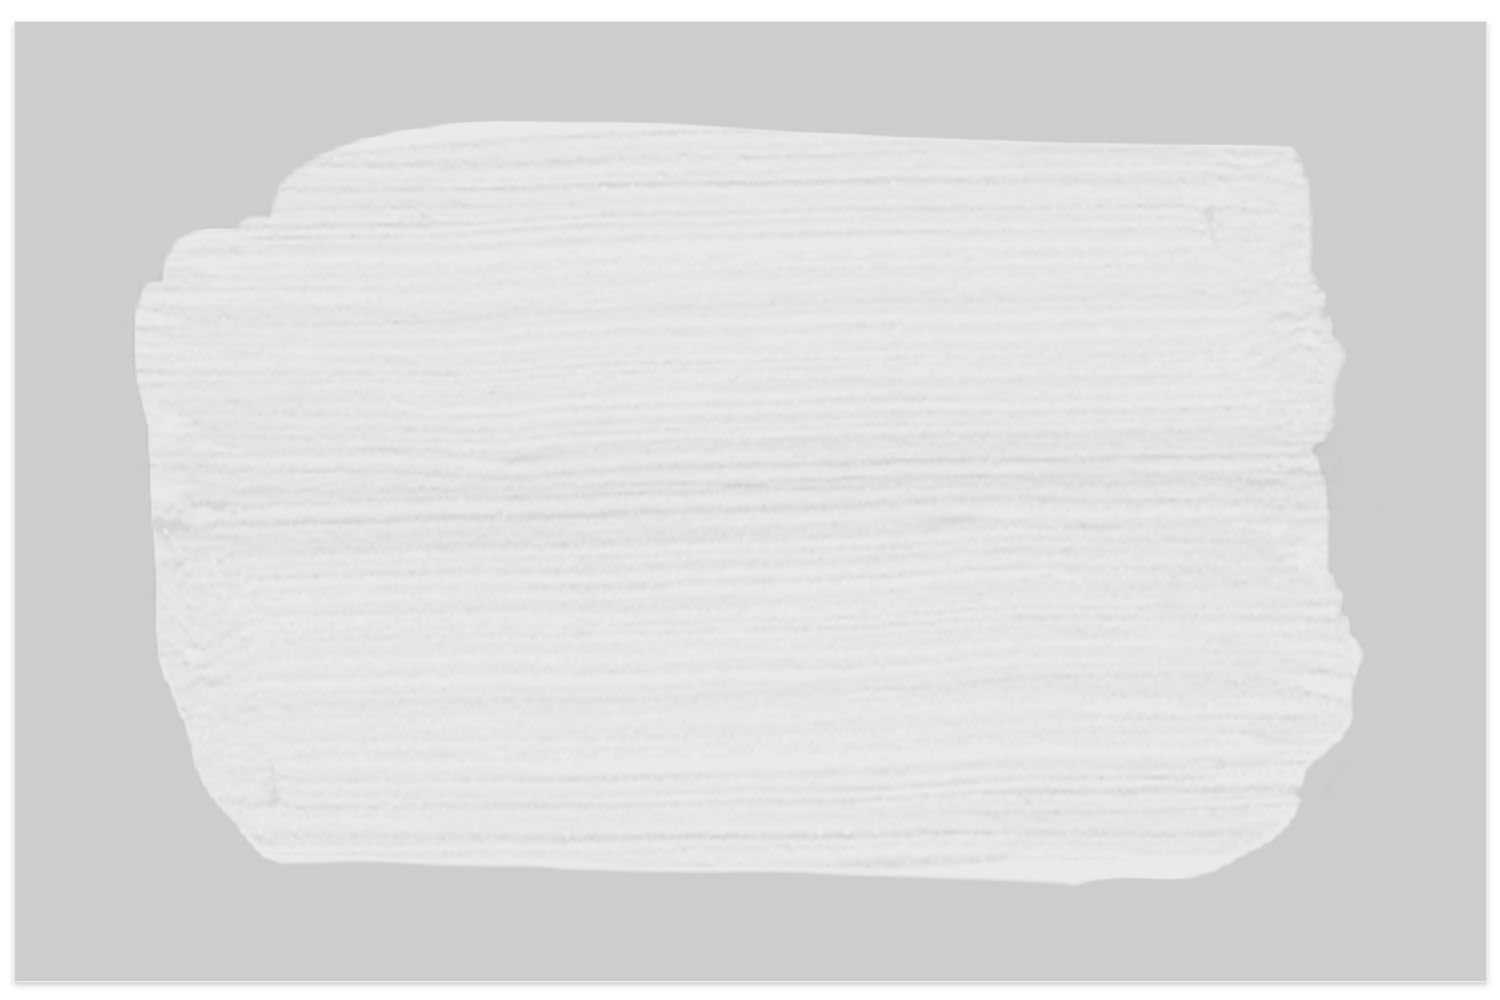 Rust-Oleum Linen White chalky paint swatch